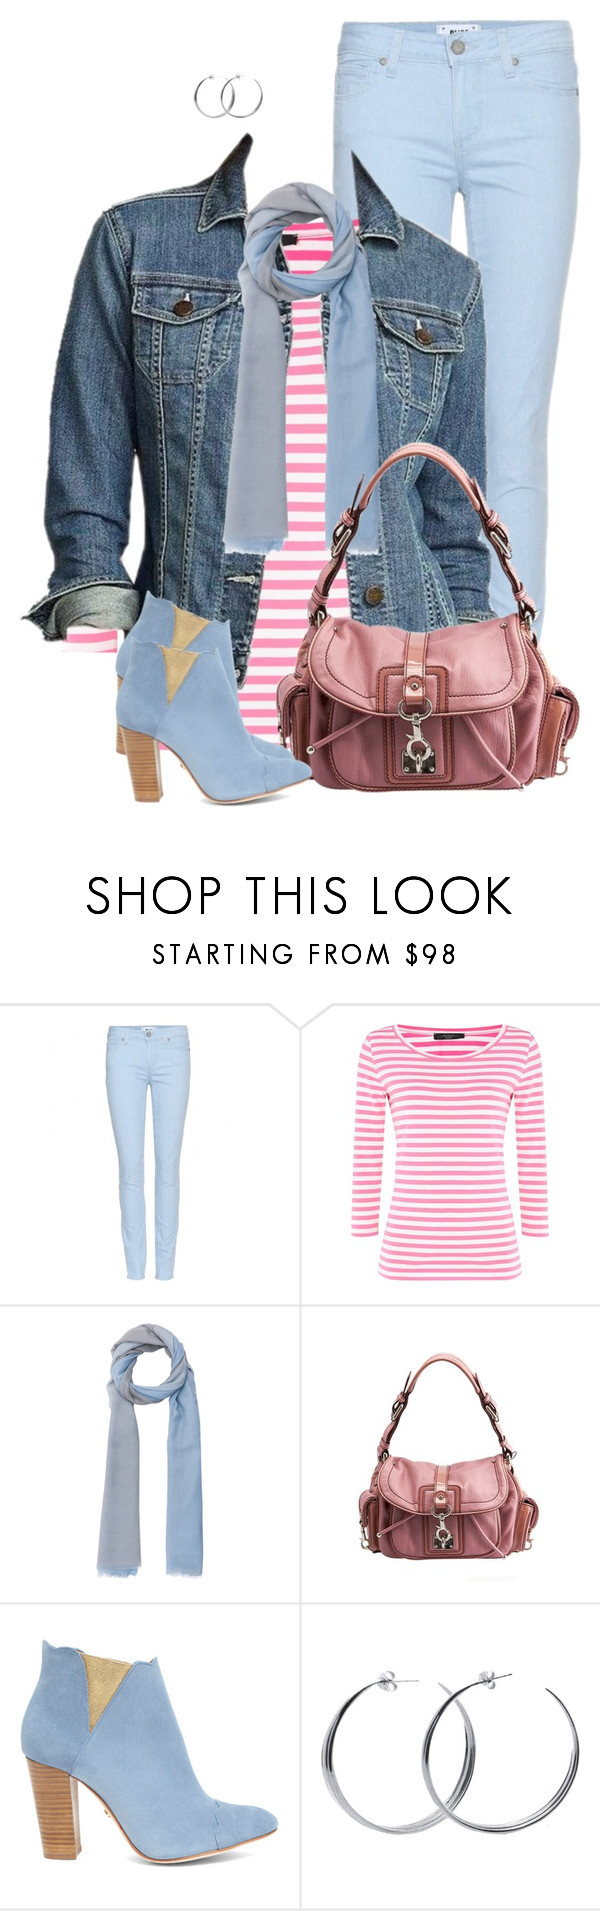 """""""Pink and Blue"""" by daiscat ❤ liked on Polyvore featuring Paige Denim, Weekend Max Mara, Eddie Bauer, Marc Jacobs, Cleo B, Coco's Liberty, women's clothing, women's fashion, women and female"""